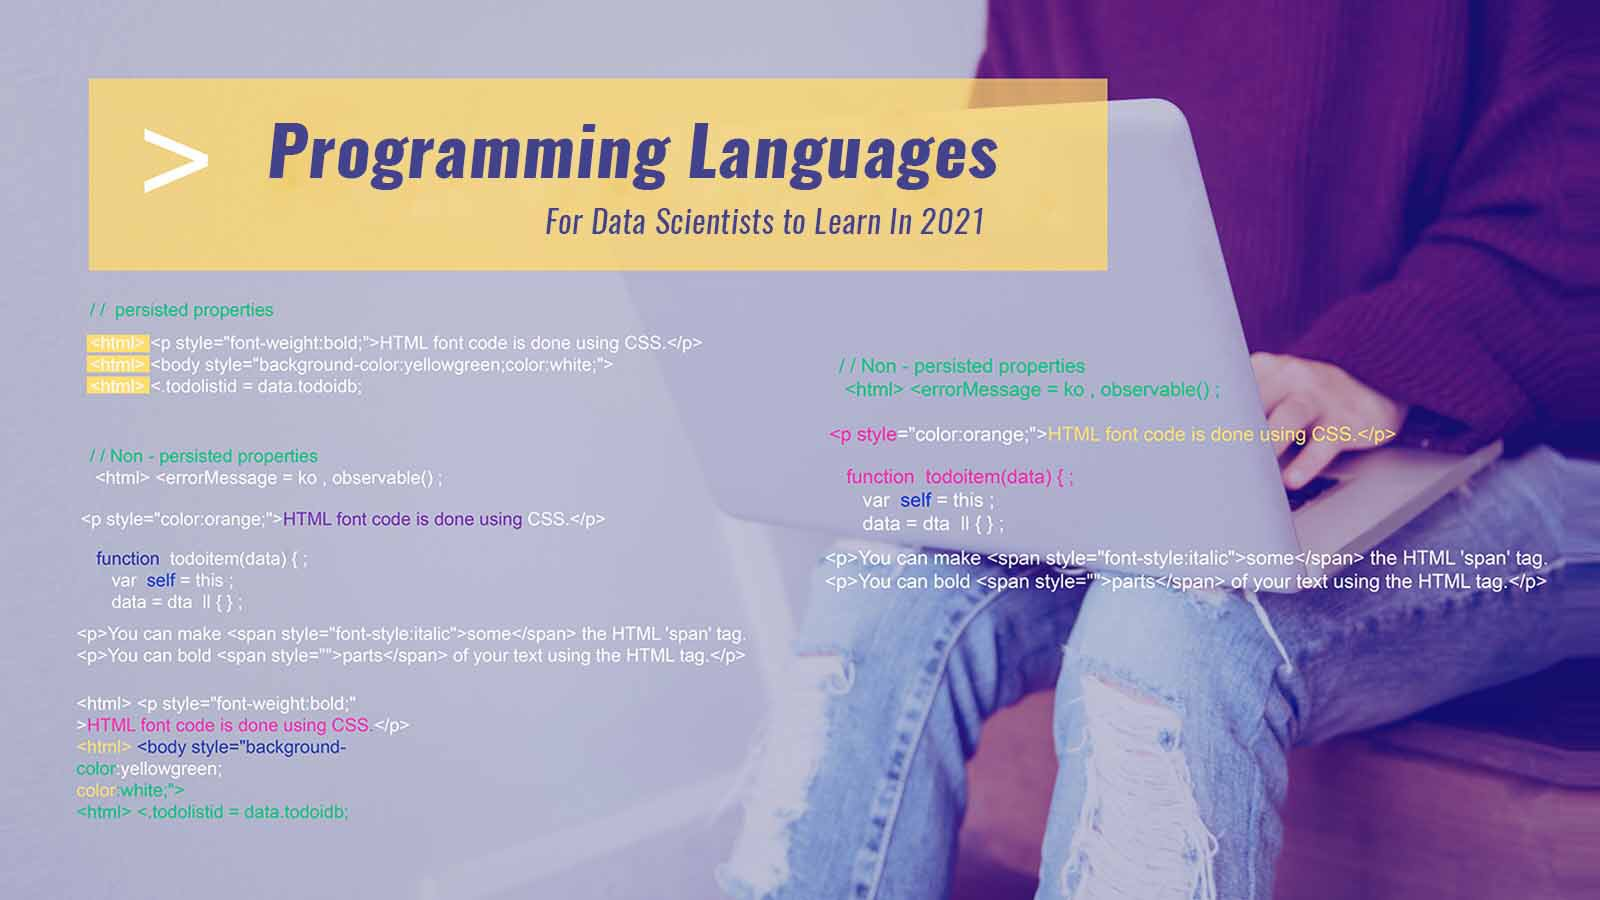 Top Programming Languages For Data Scientists In 2021